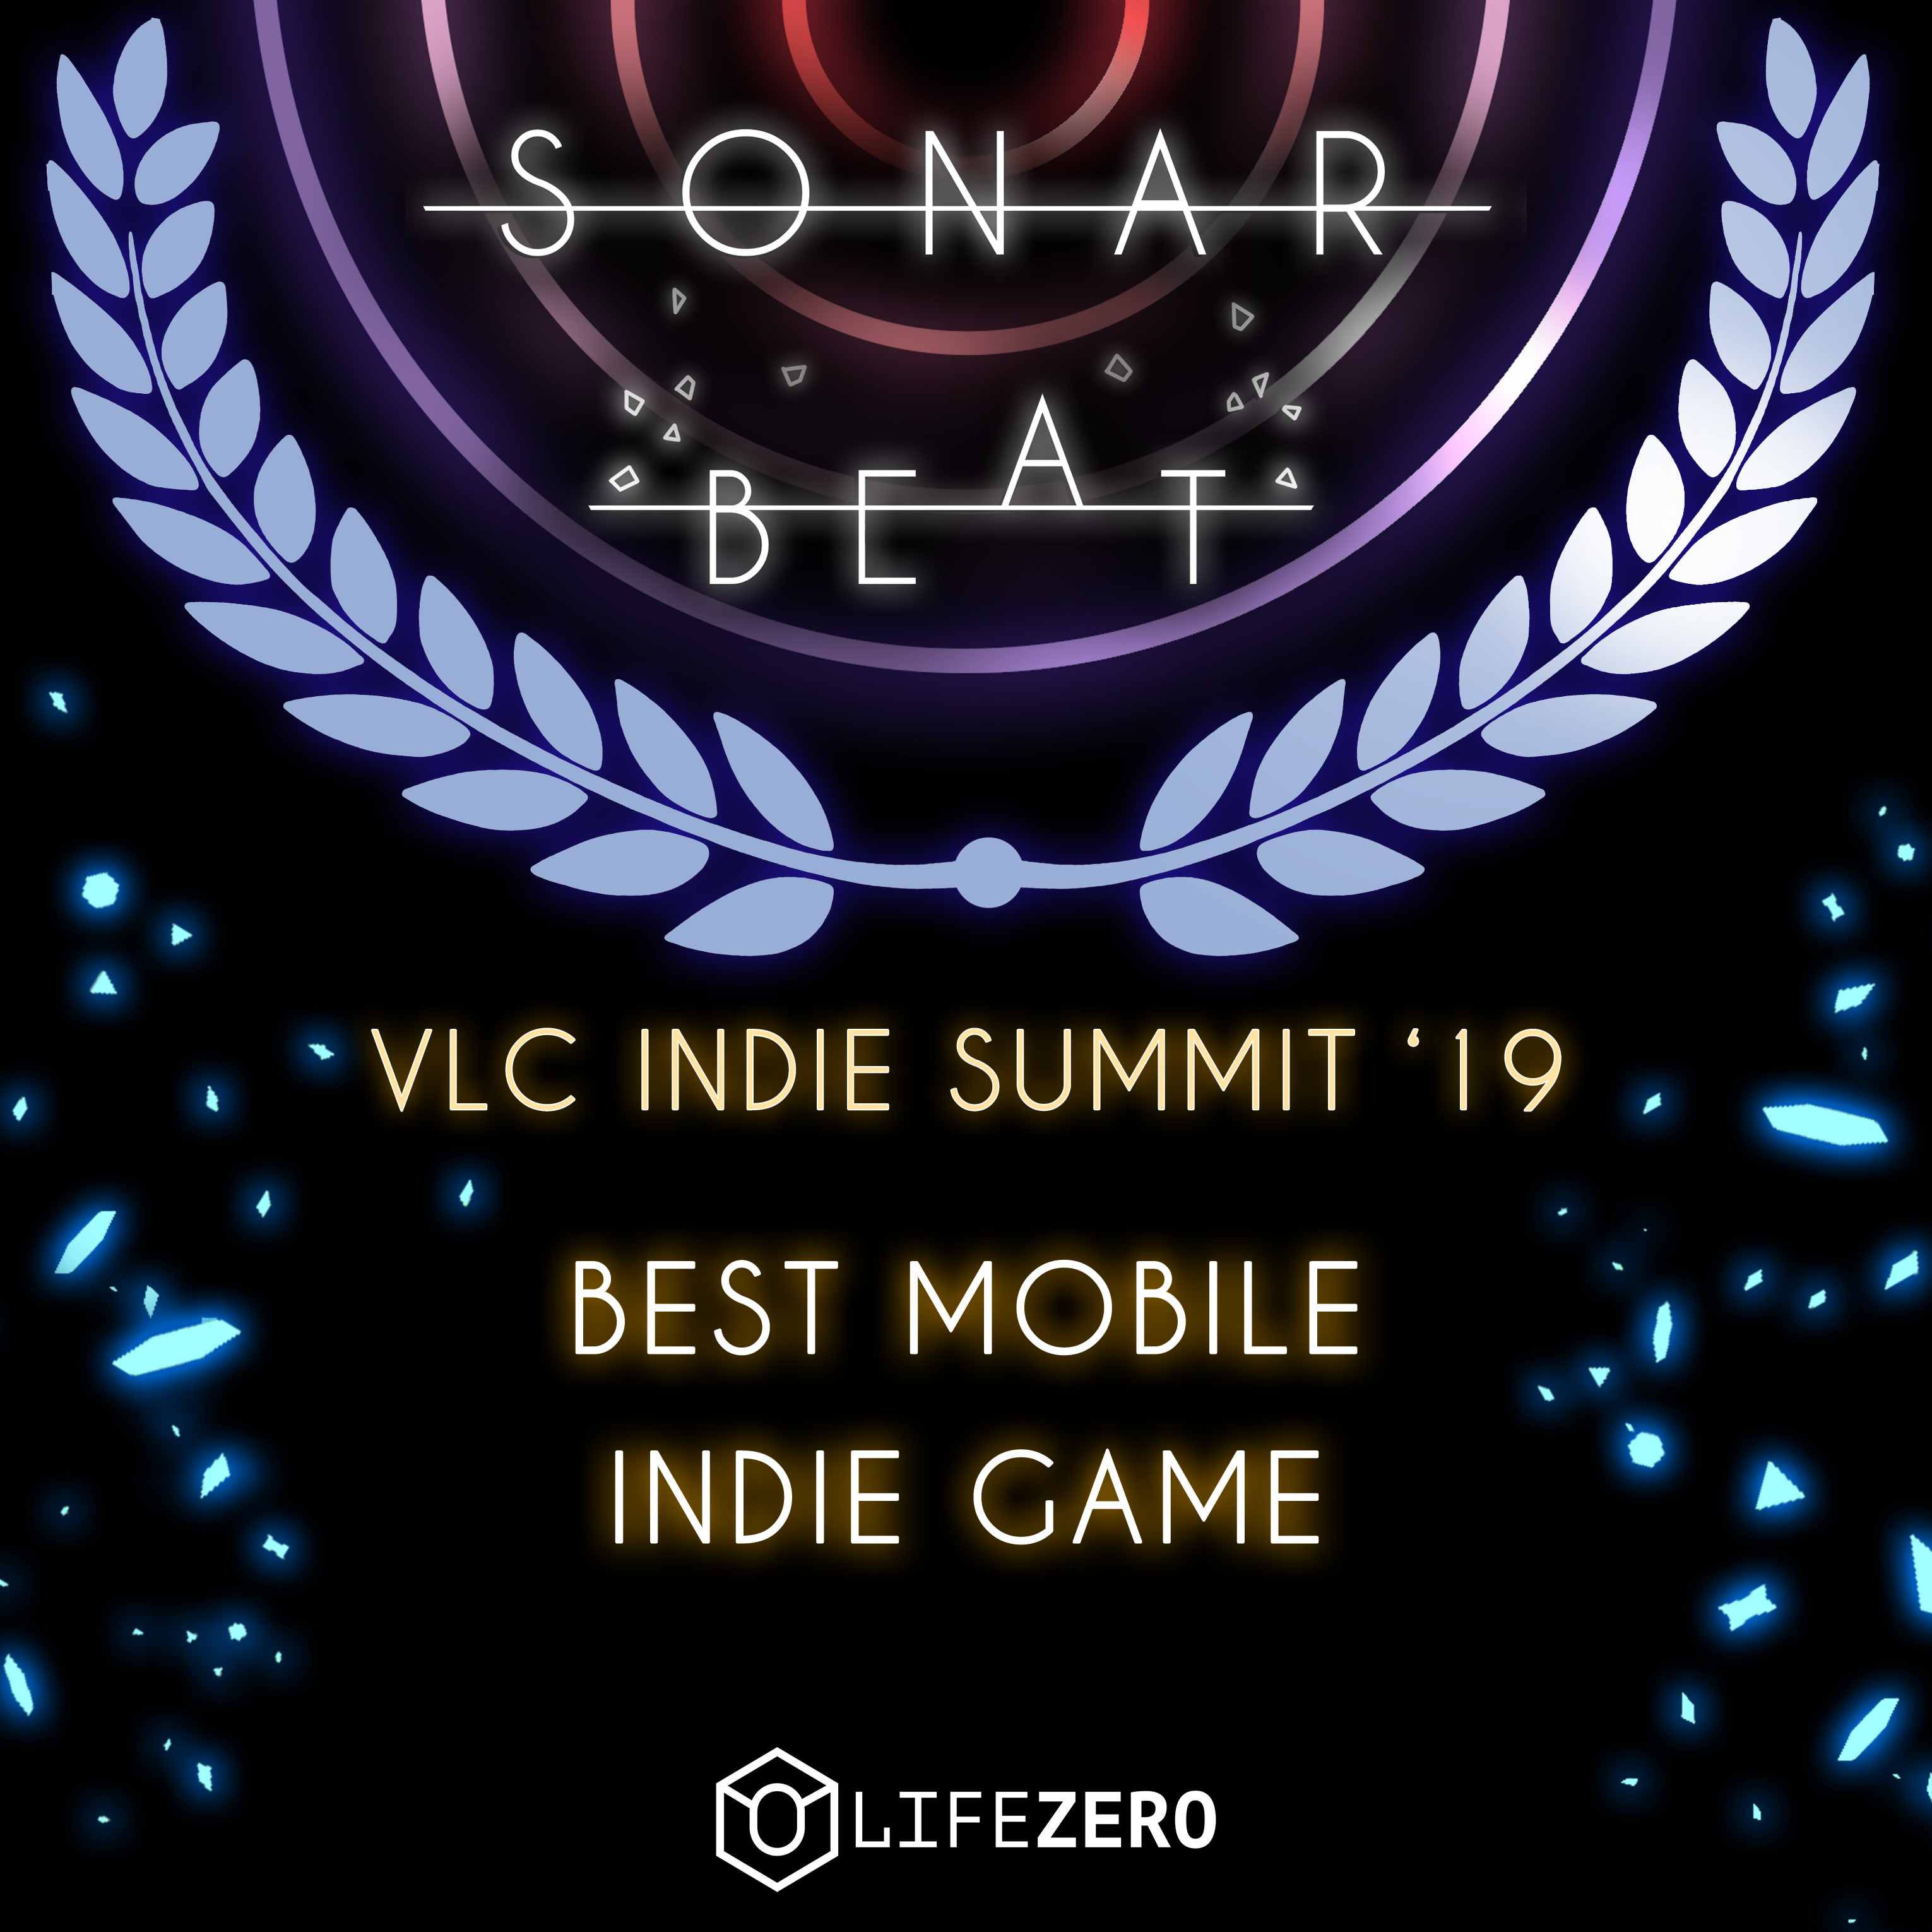 Best Mobile Game award